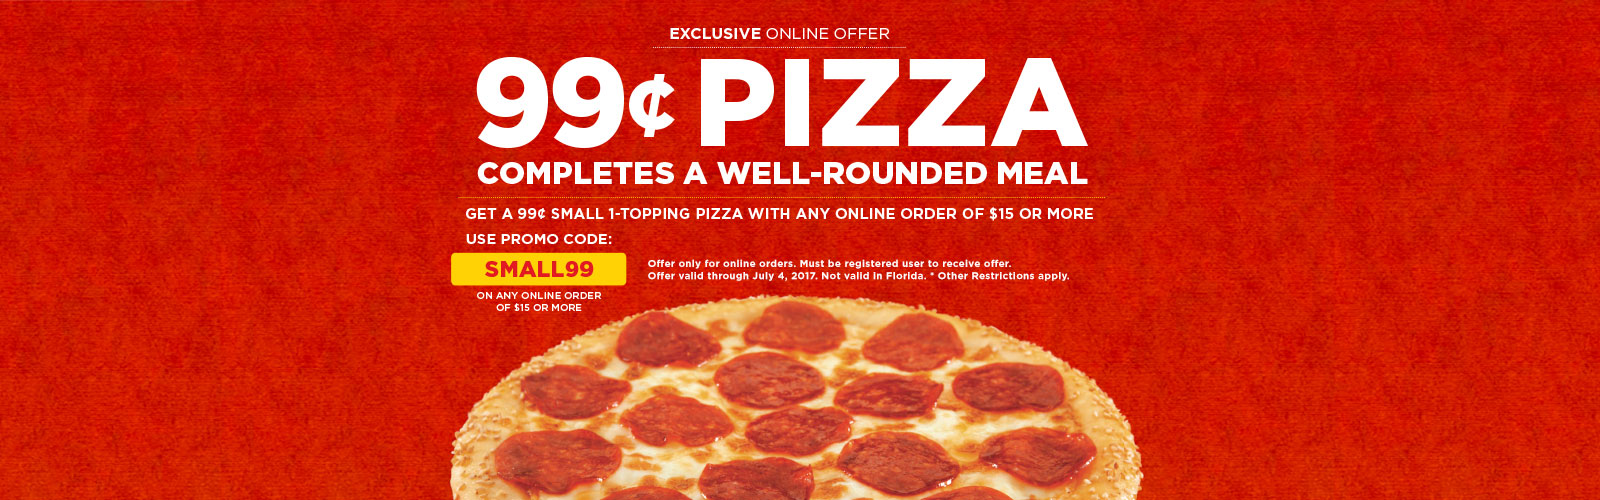 99¢ Small Pizza with $15 order of $15 or more online.